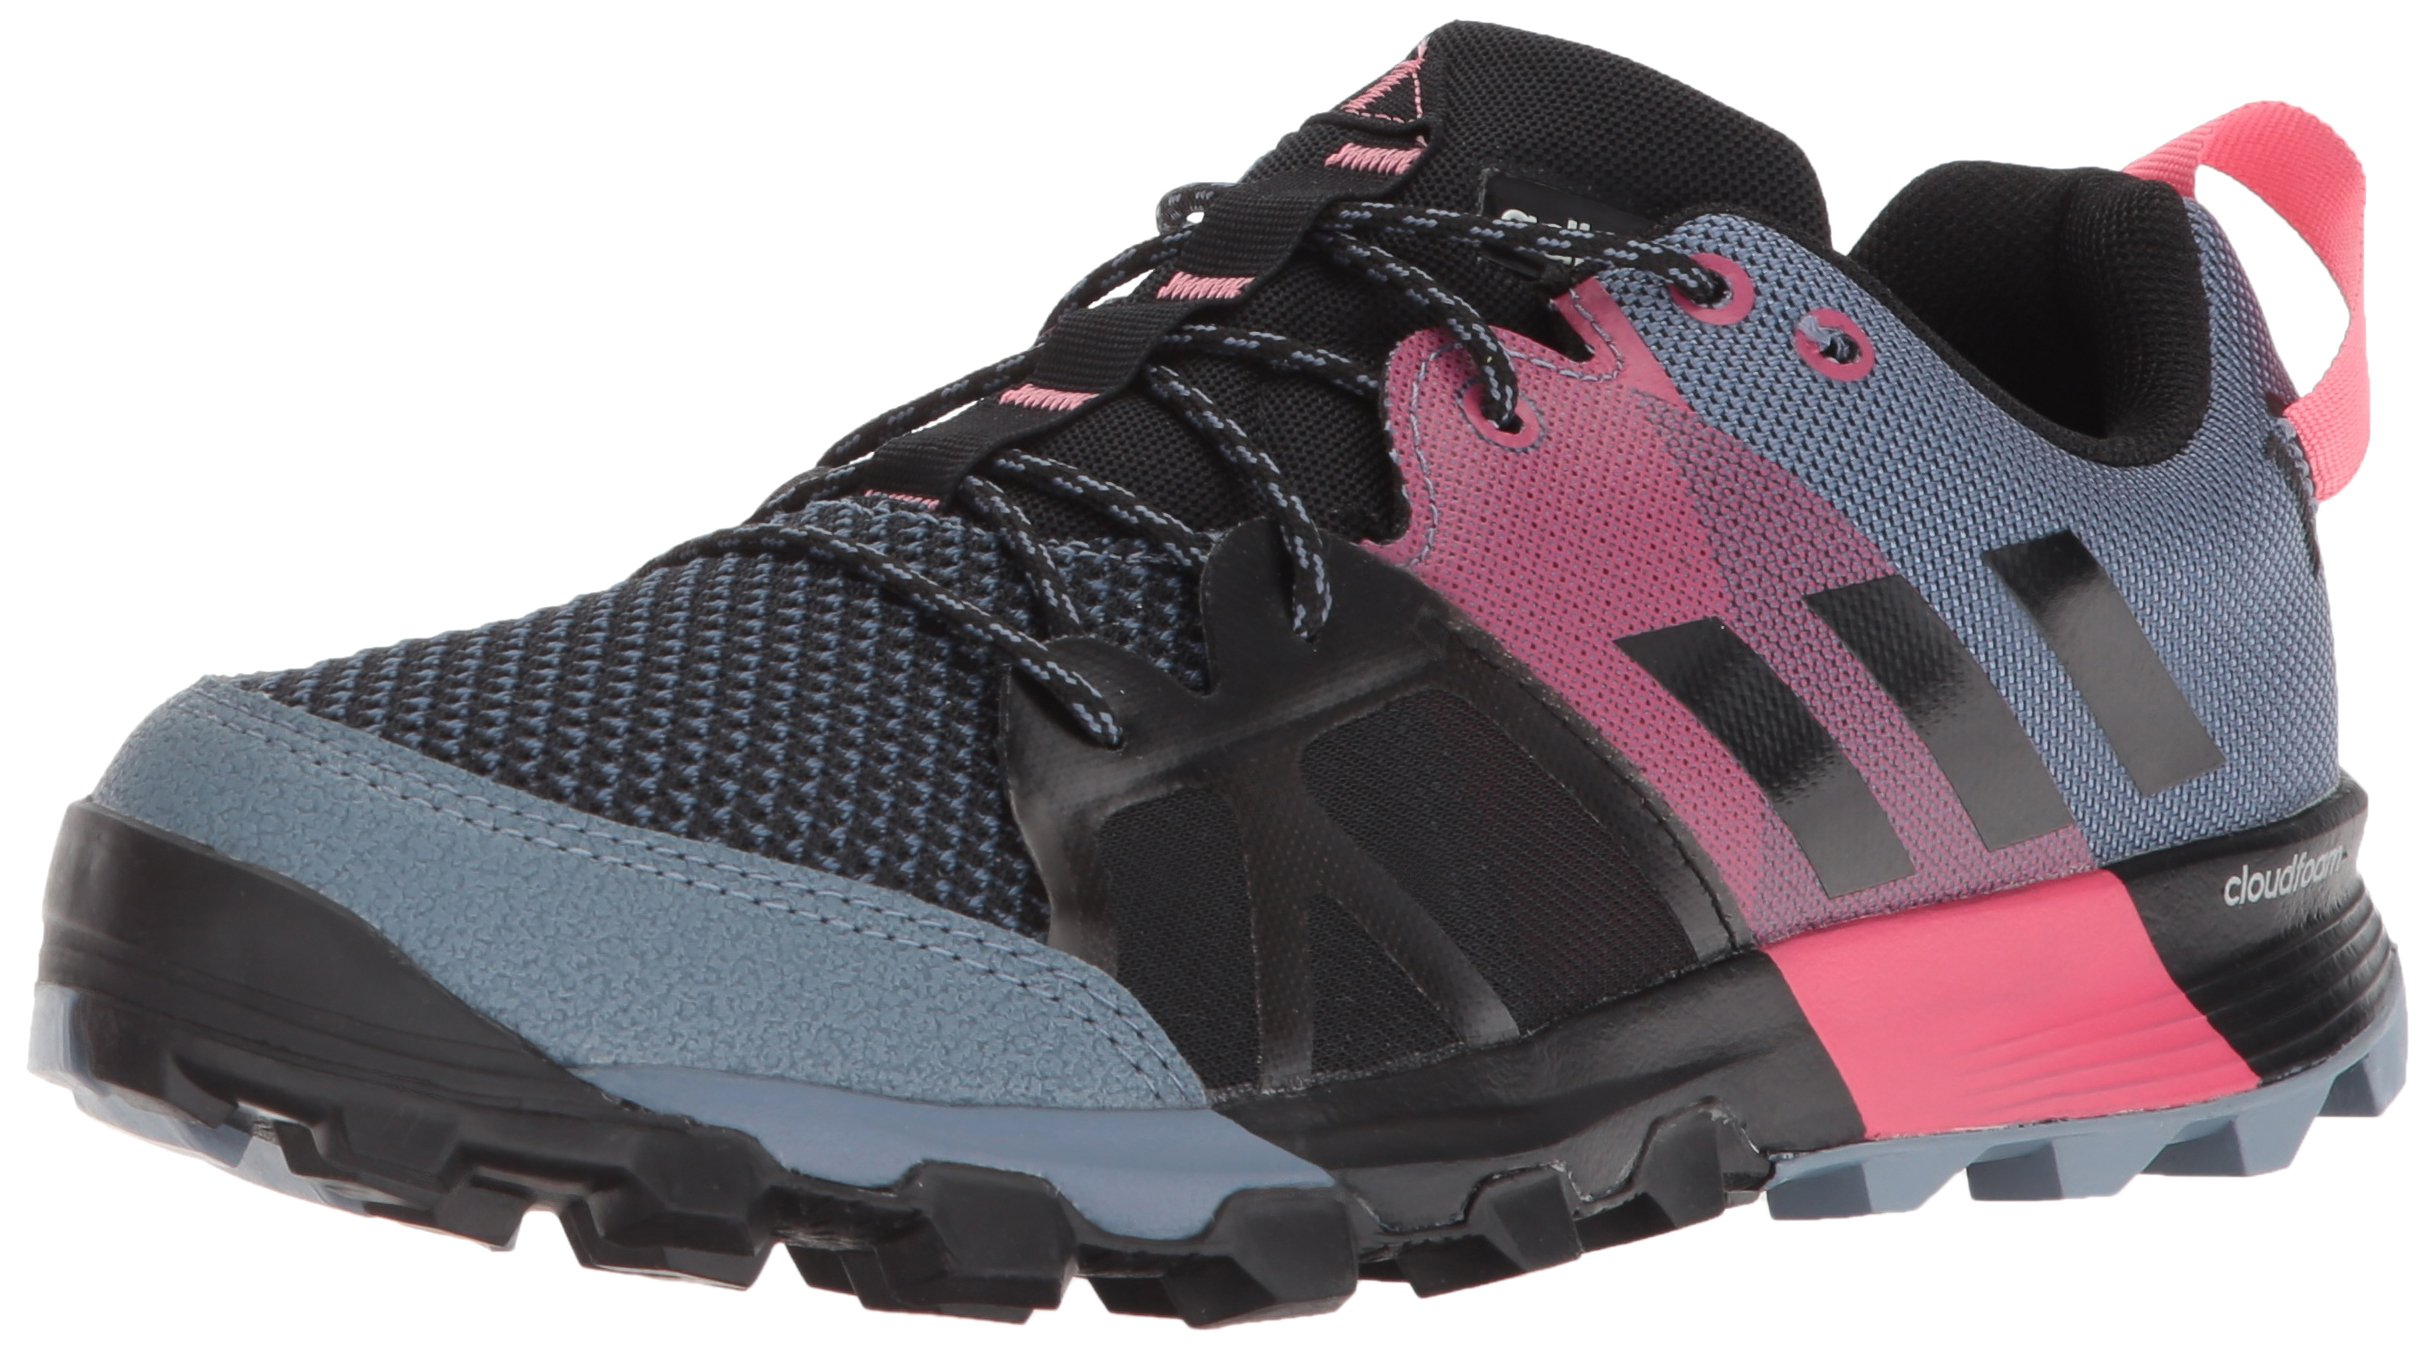 adidas outdoor Women's Kanadia 8.1 W Trail Running Shoe, Raw Steel/Off White/Real Pink, 8 M US